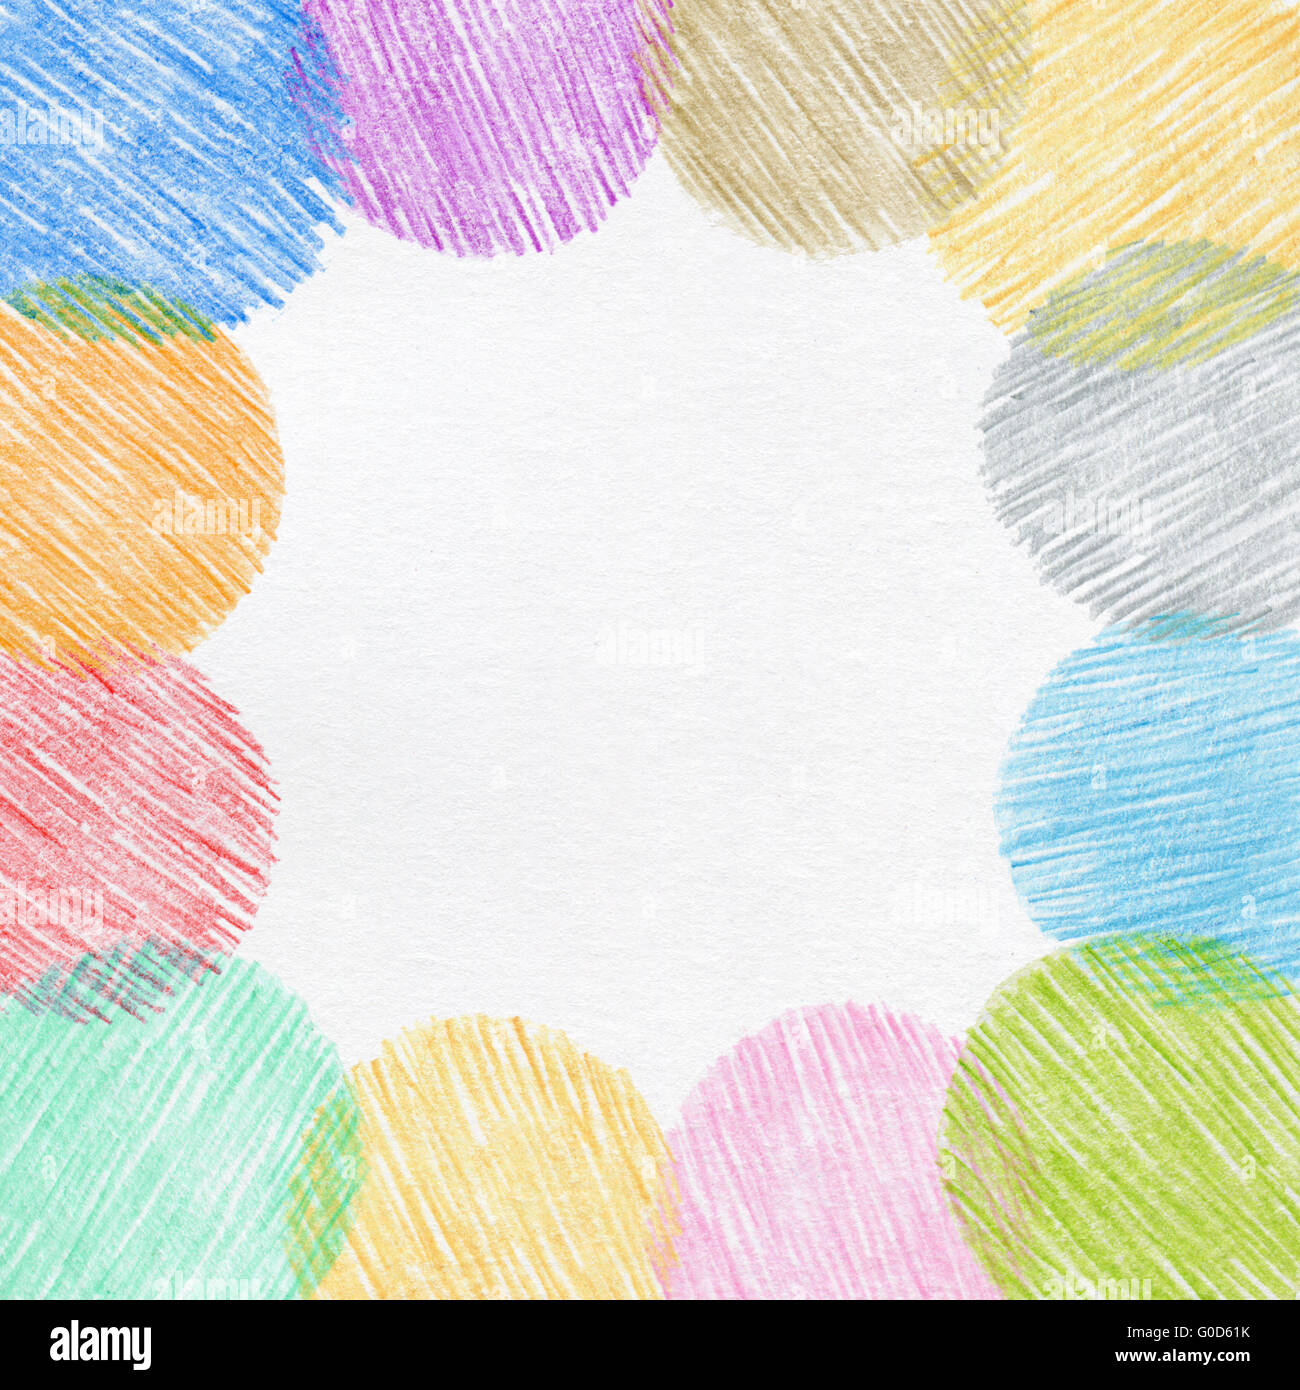 Drawingcolor Hand Drawing Color Pencil Frame Stock Photo Royalty Free Image